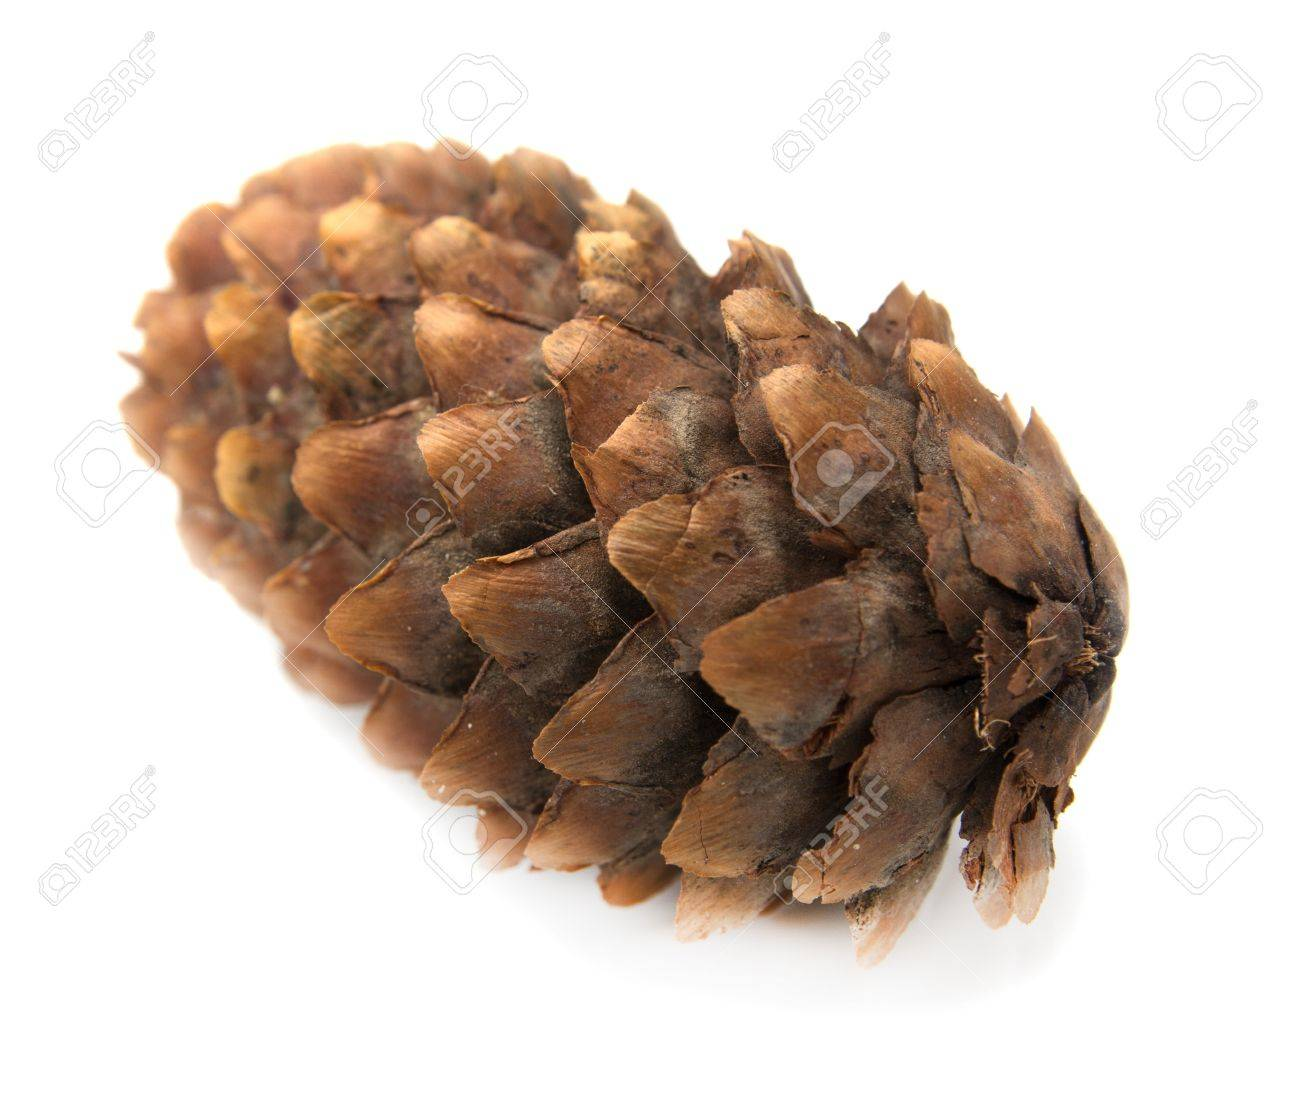 spruce pine cone on white background Stock Photo - 14061952